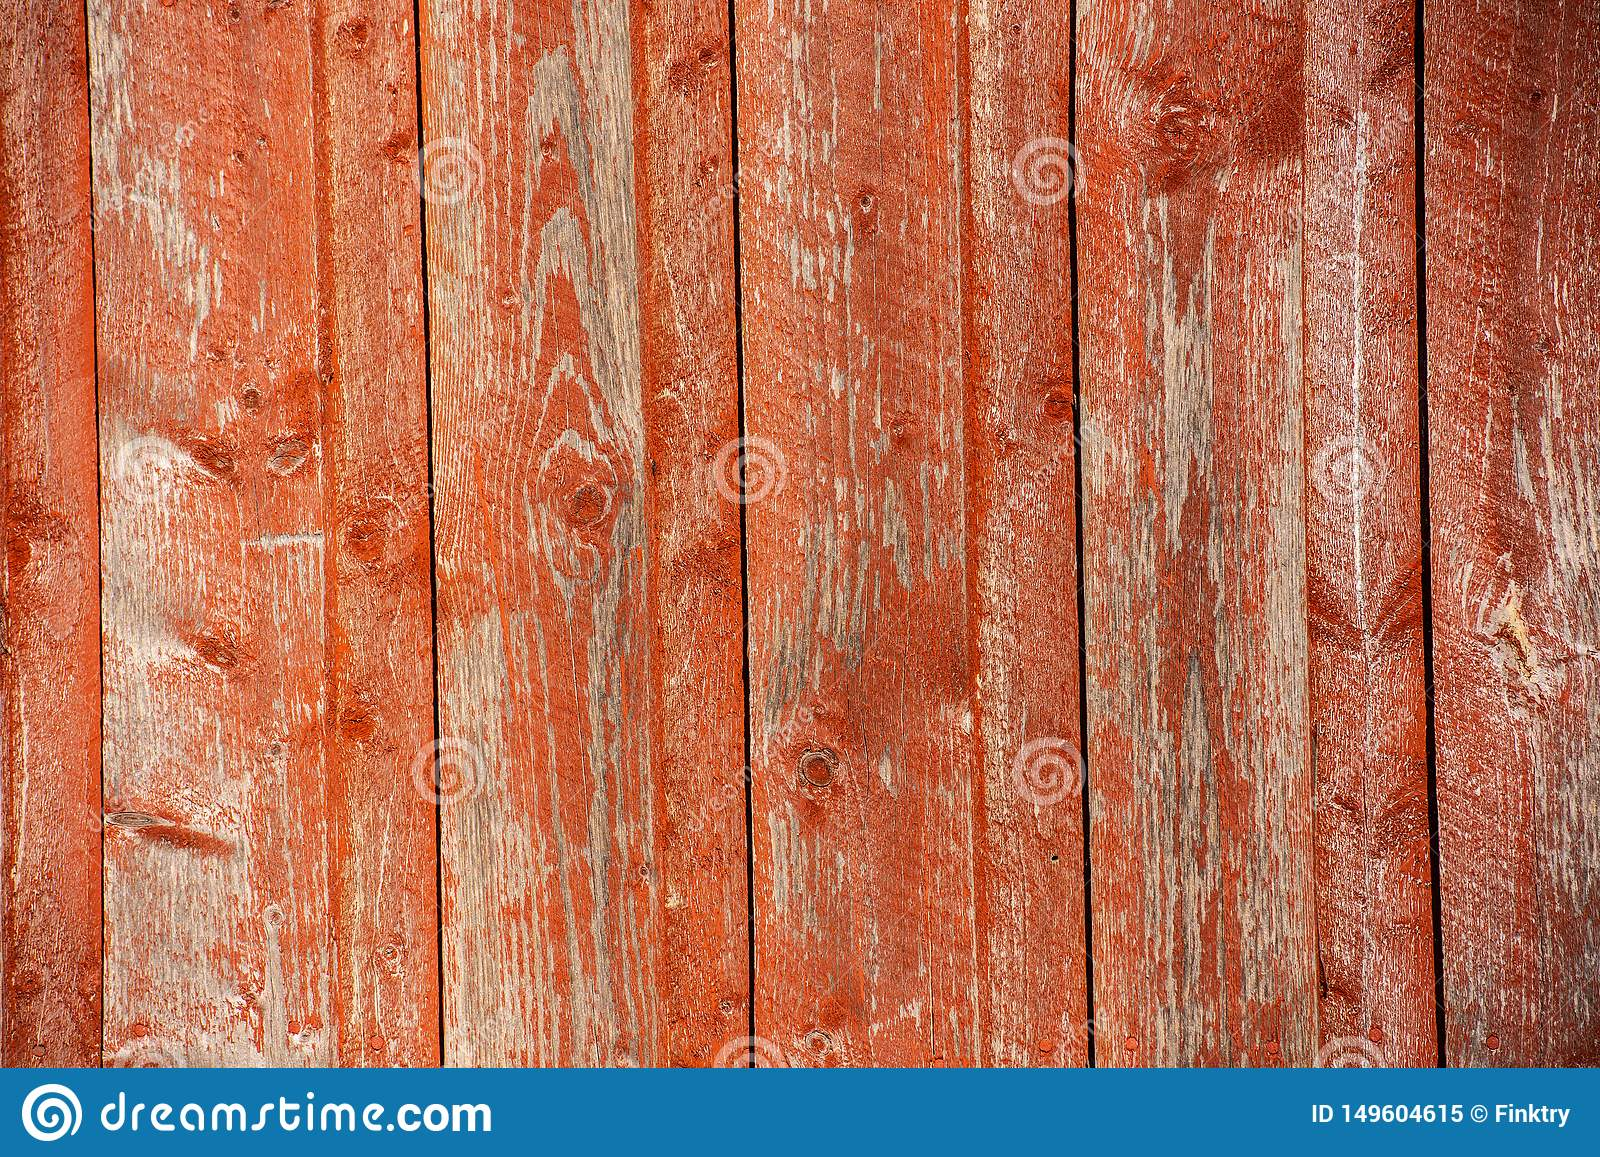 Red vertical wood paneling in sunlight